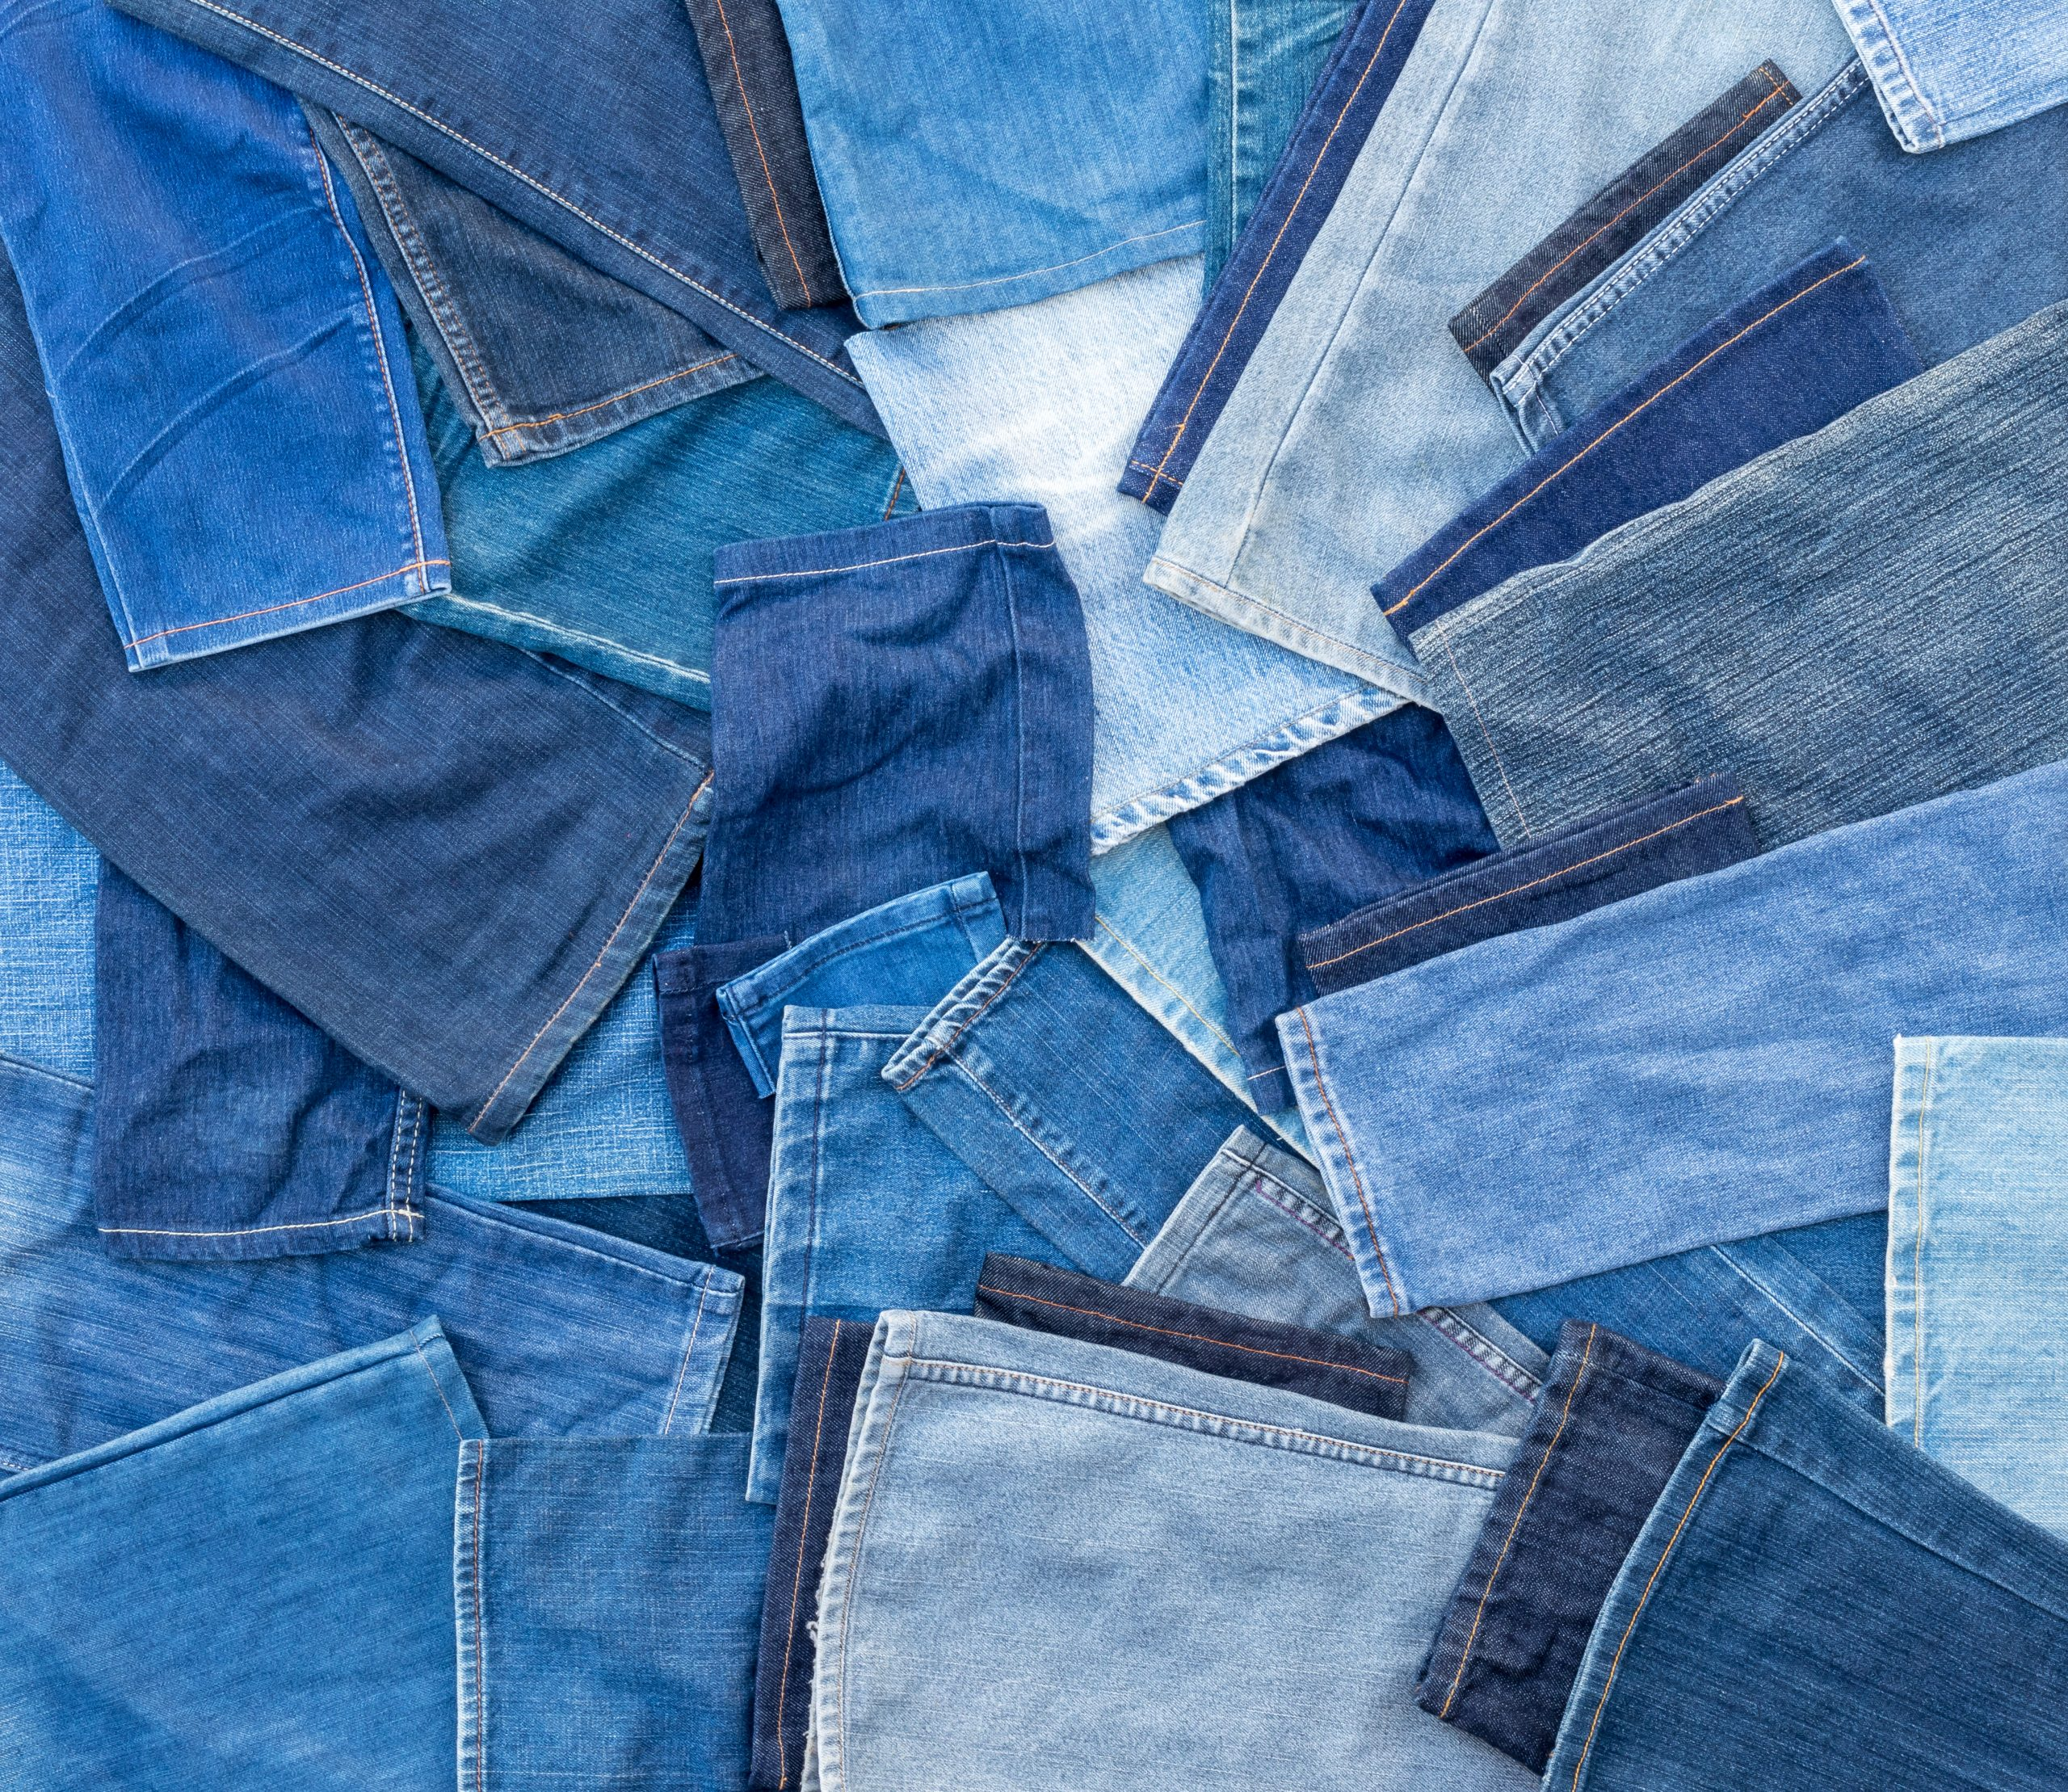 Different shades of blue denim jeans, many of which are left pieces over from sewing repairs.